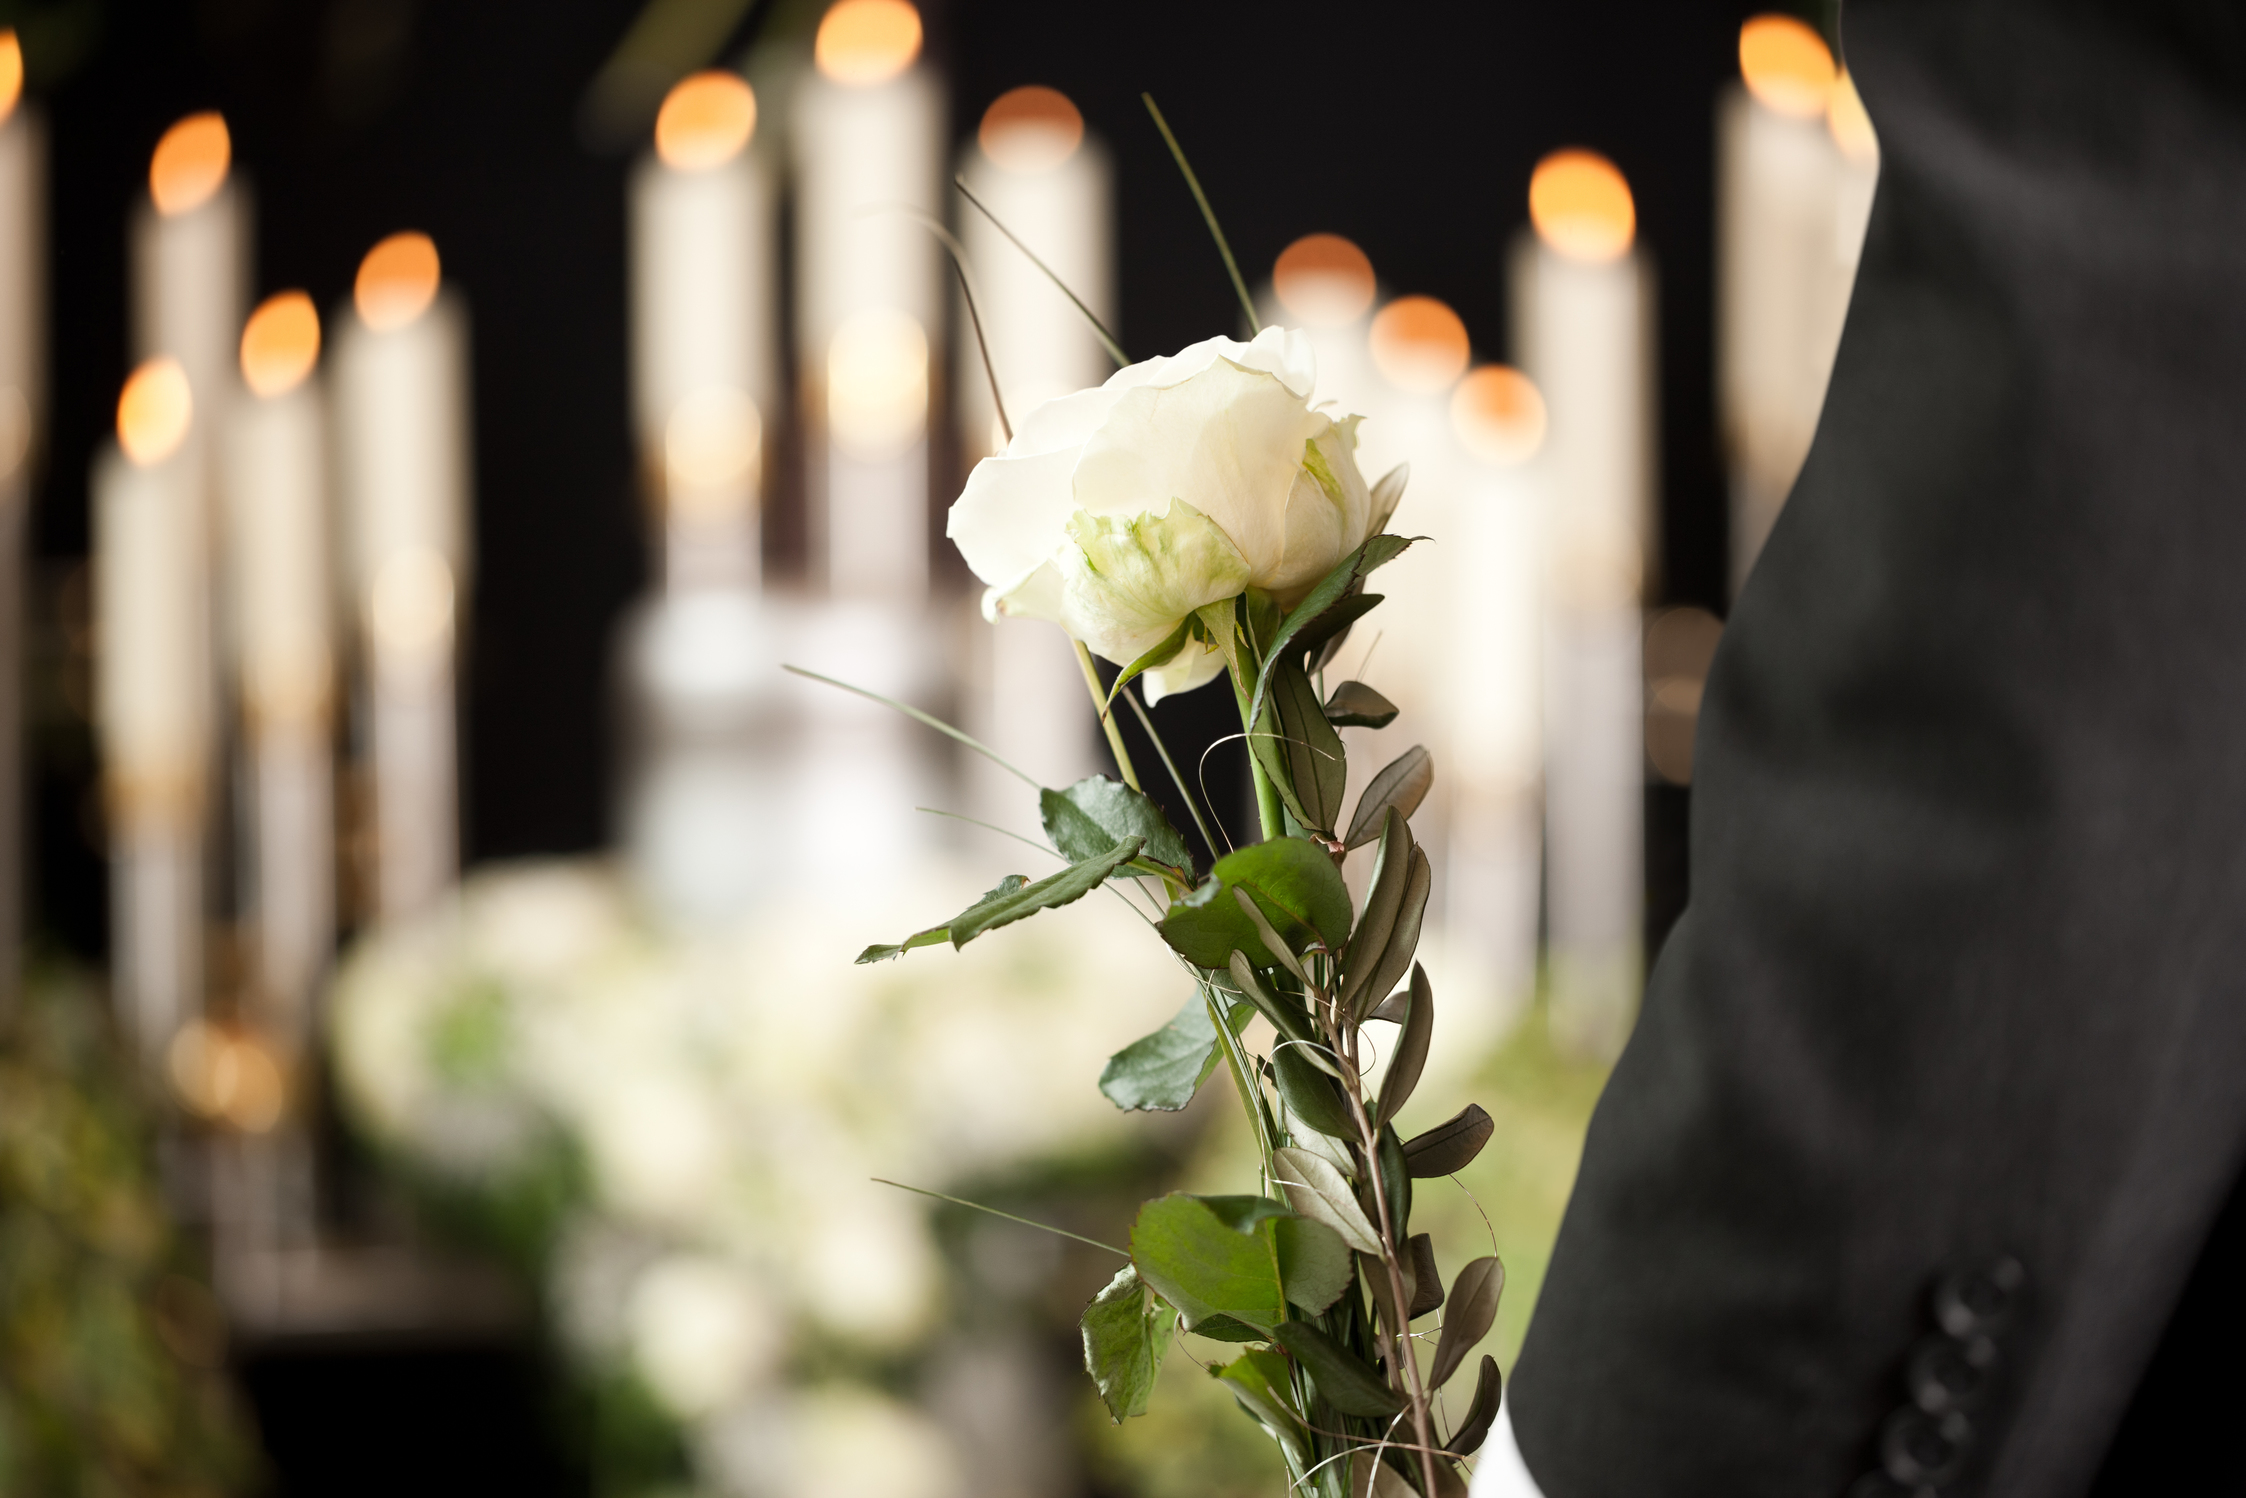 Offering of a funeral rose